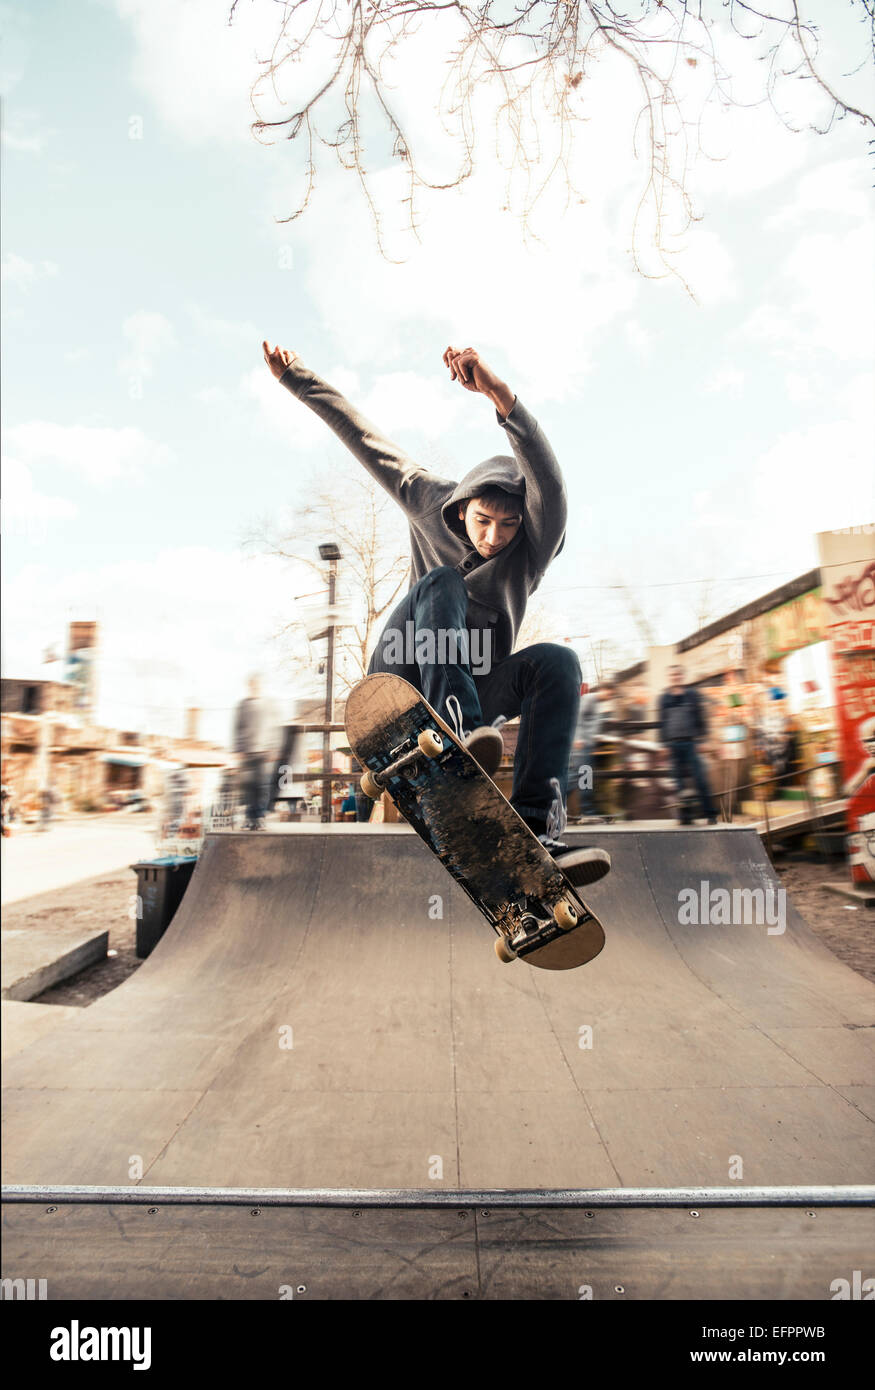 Skateboarding on mini ramp, Frontside nollie heelflip, Berlin, Germany - Stock Image